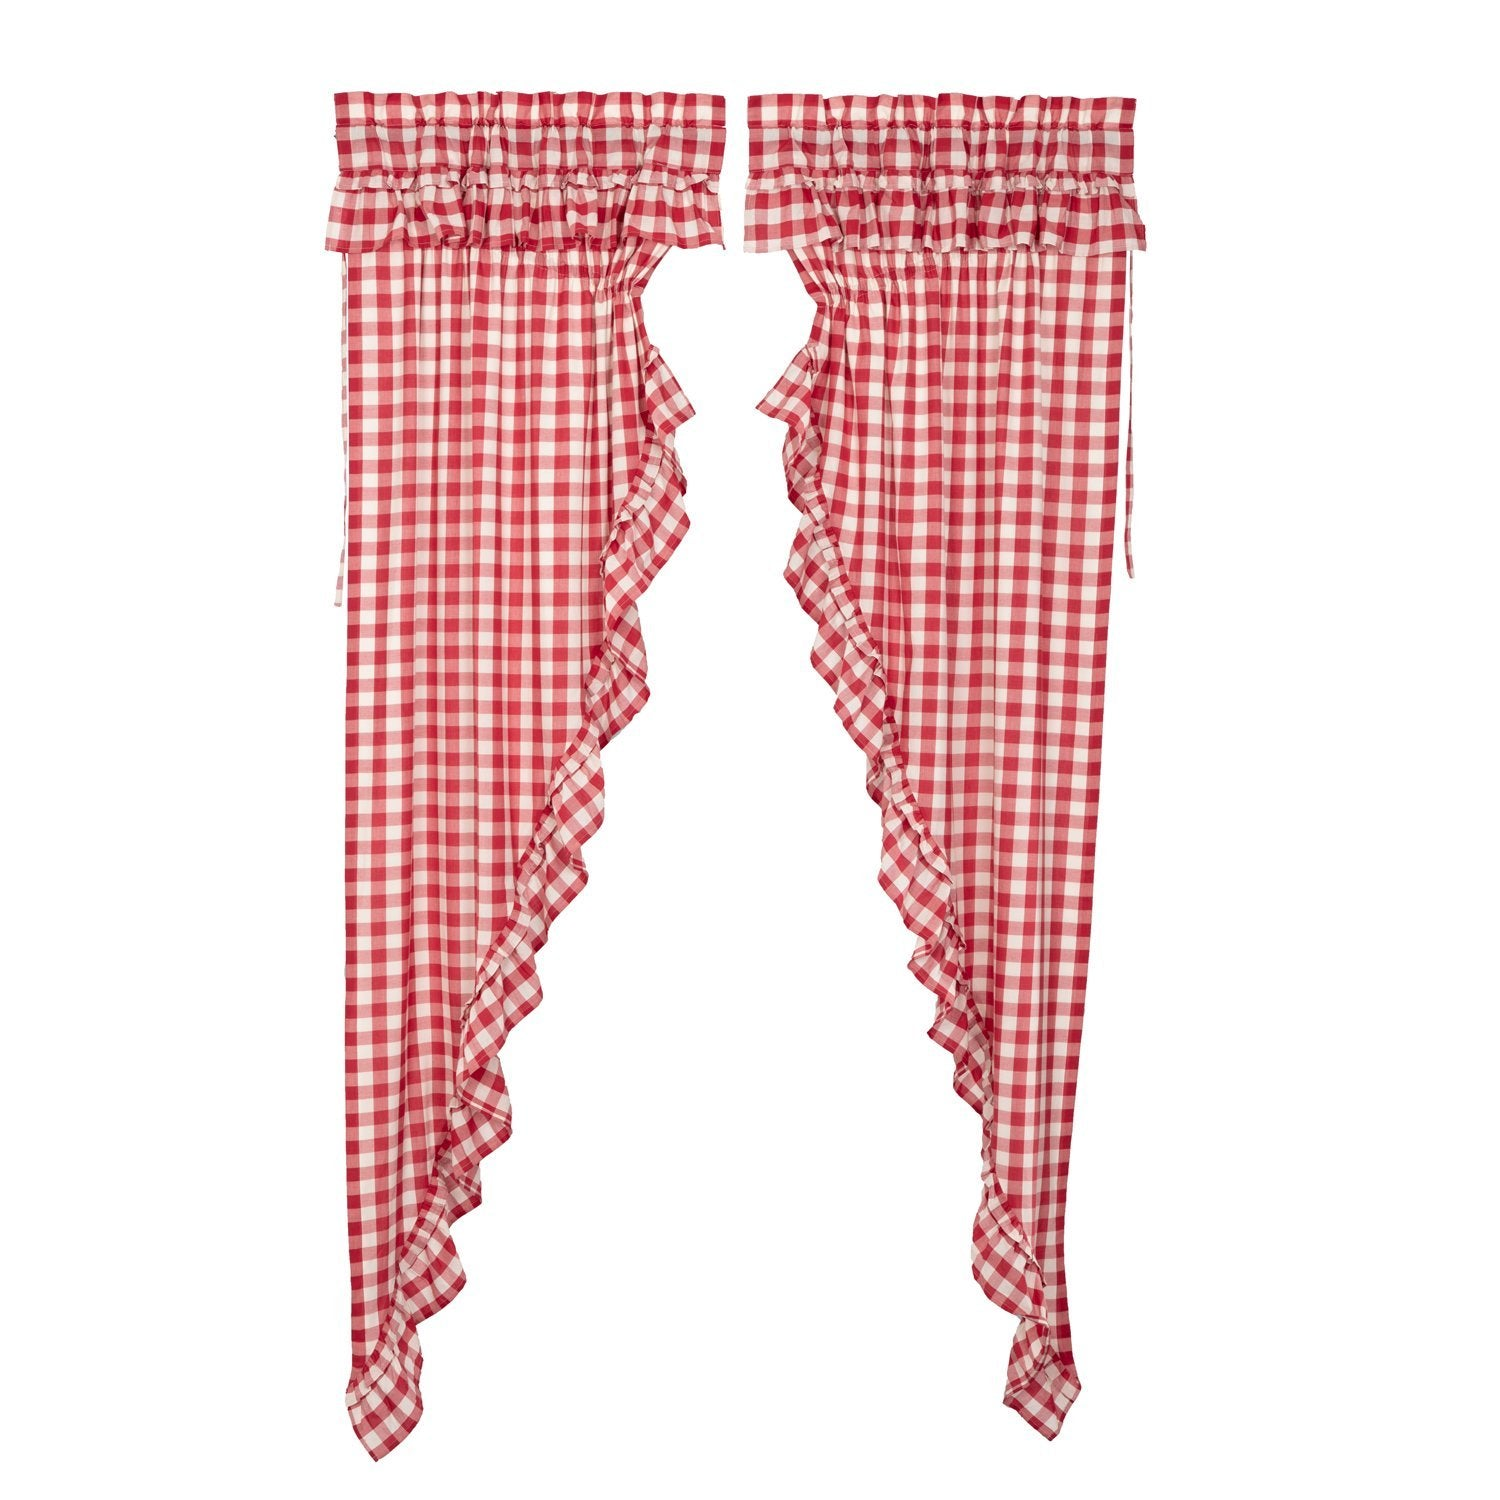 Annie Buffalo Red Check Ruffled Prairie Long Panel Set of 2.